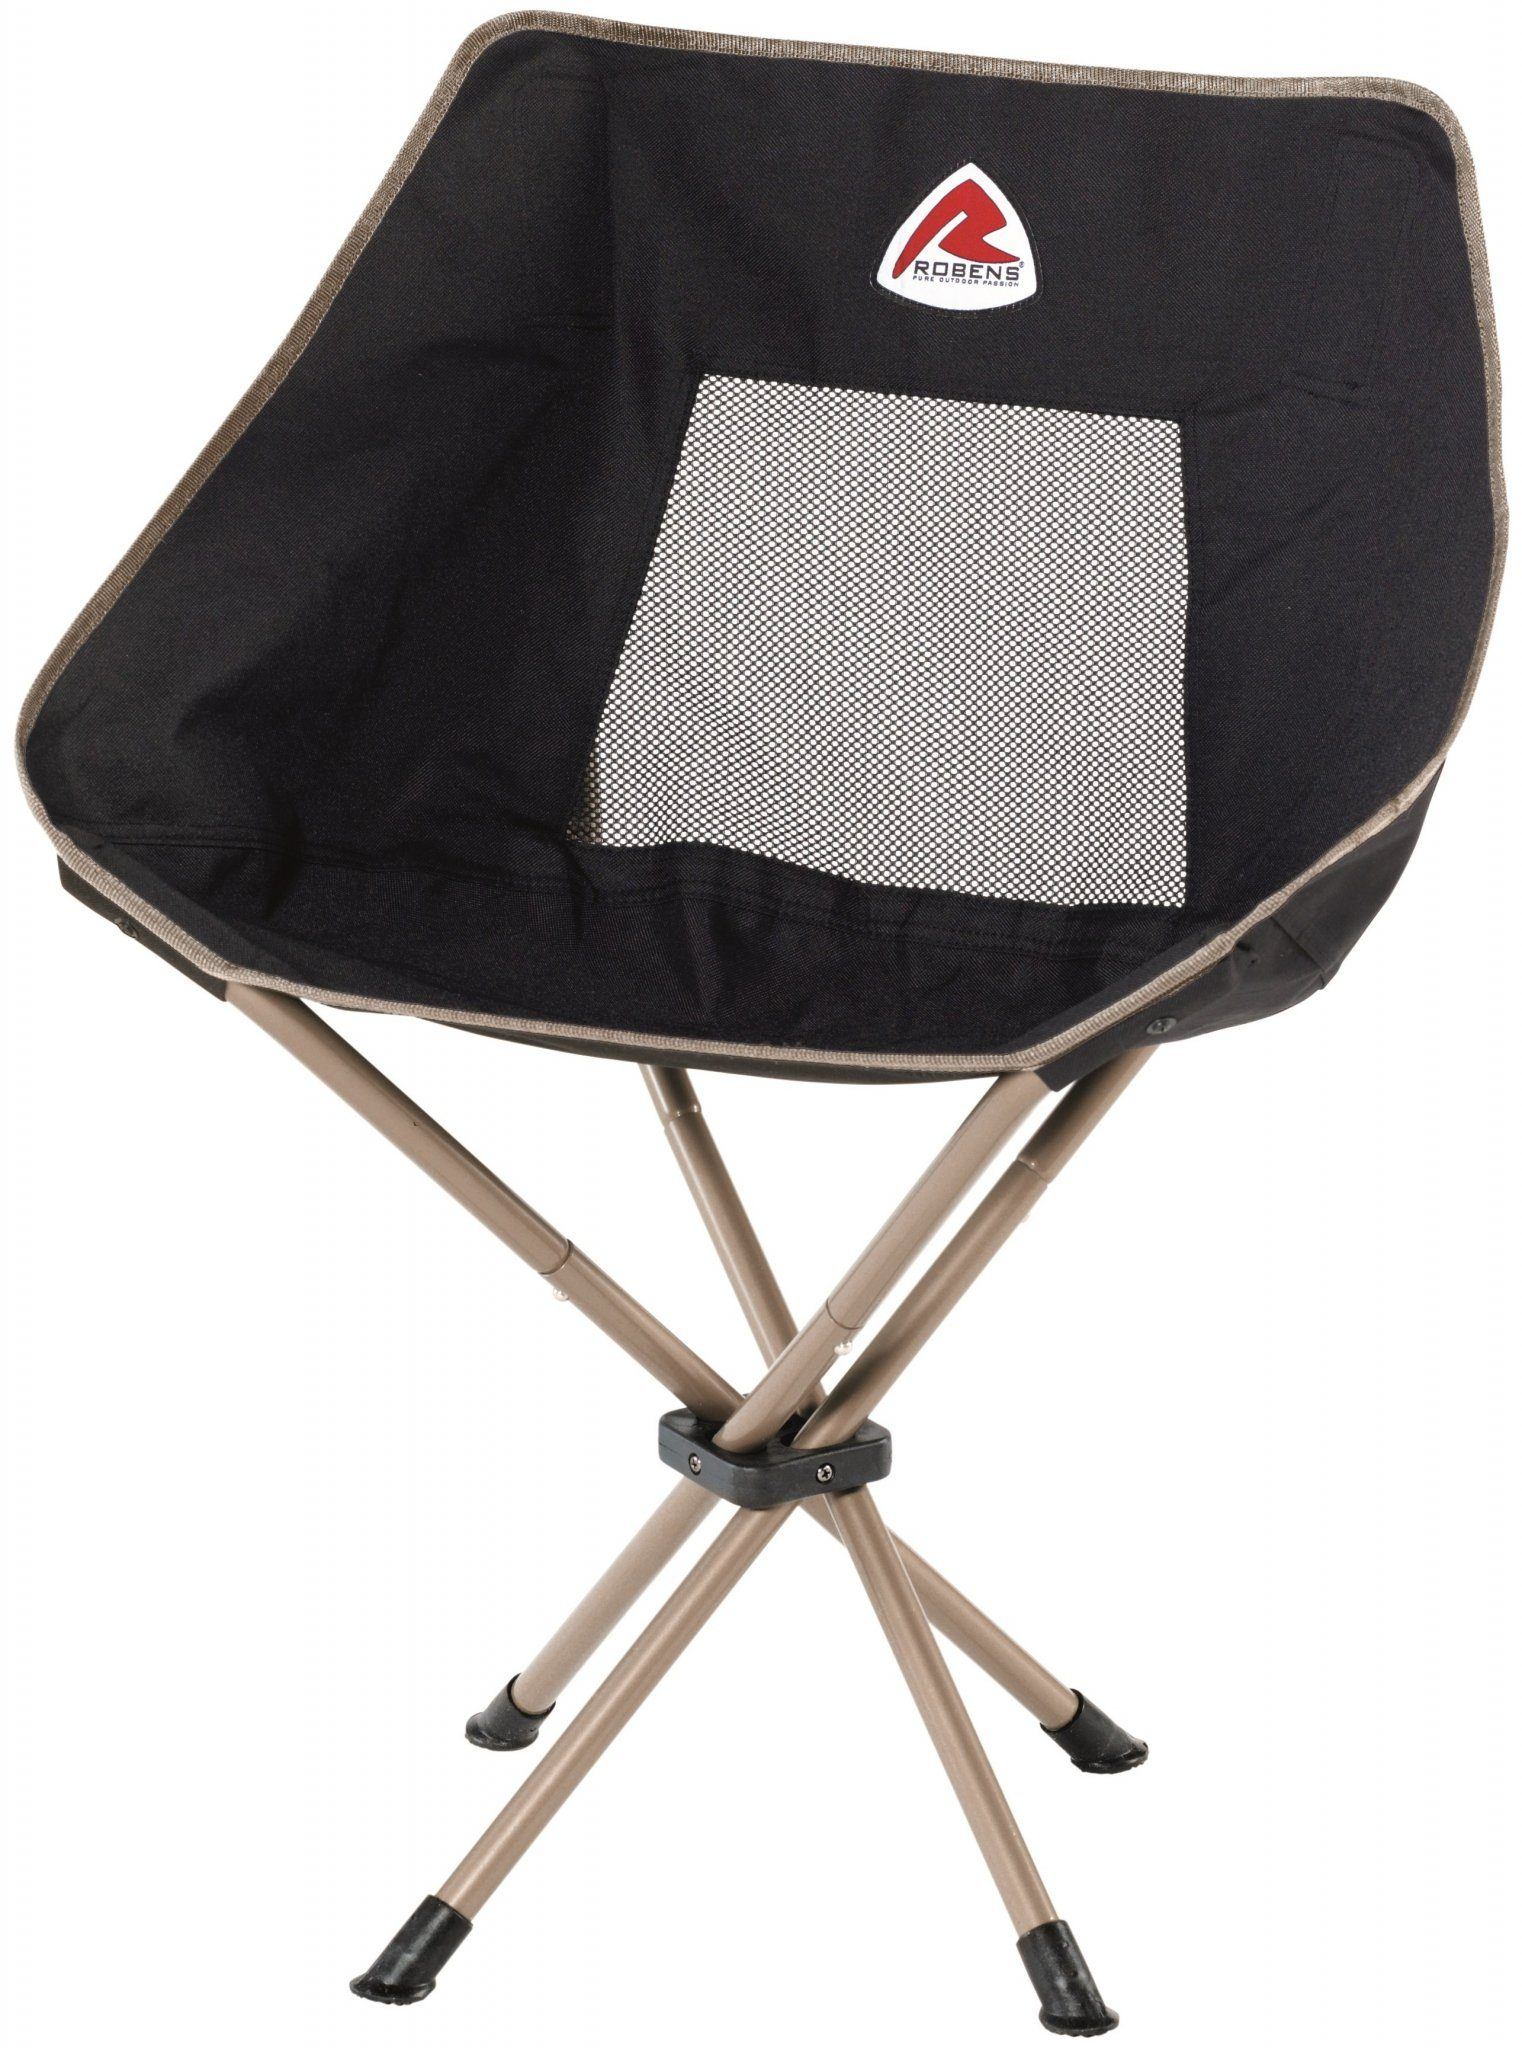 Robens Camping-Stuhl »Searcher Folding Chair«